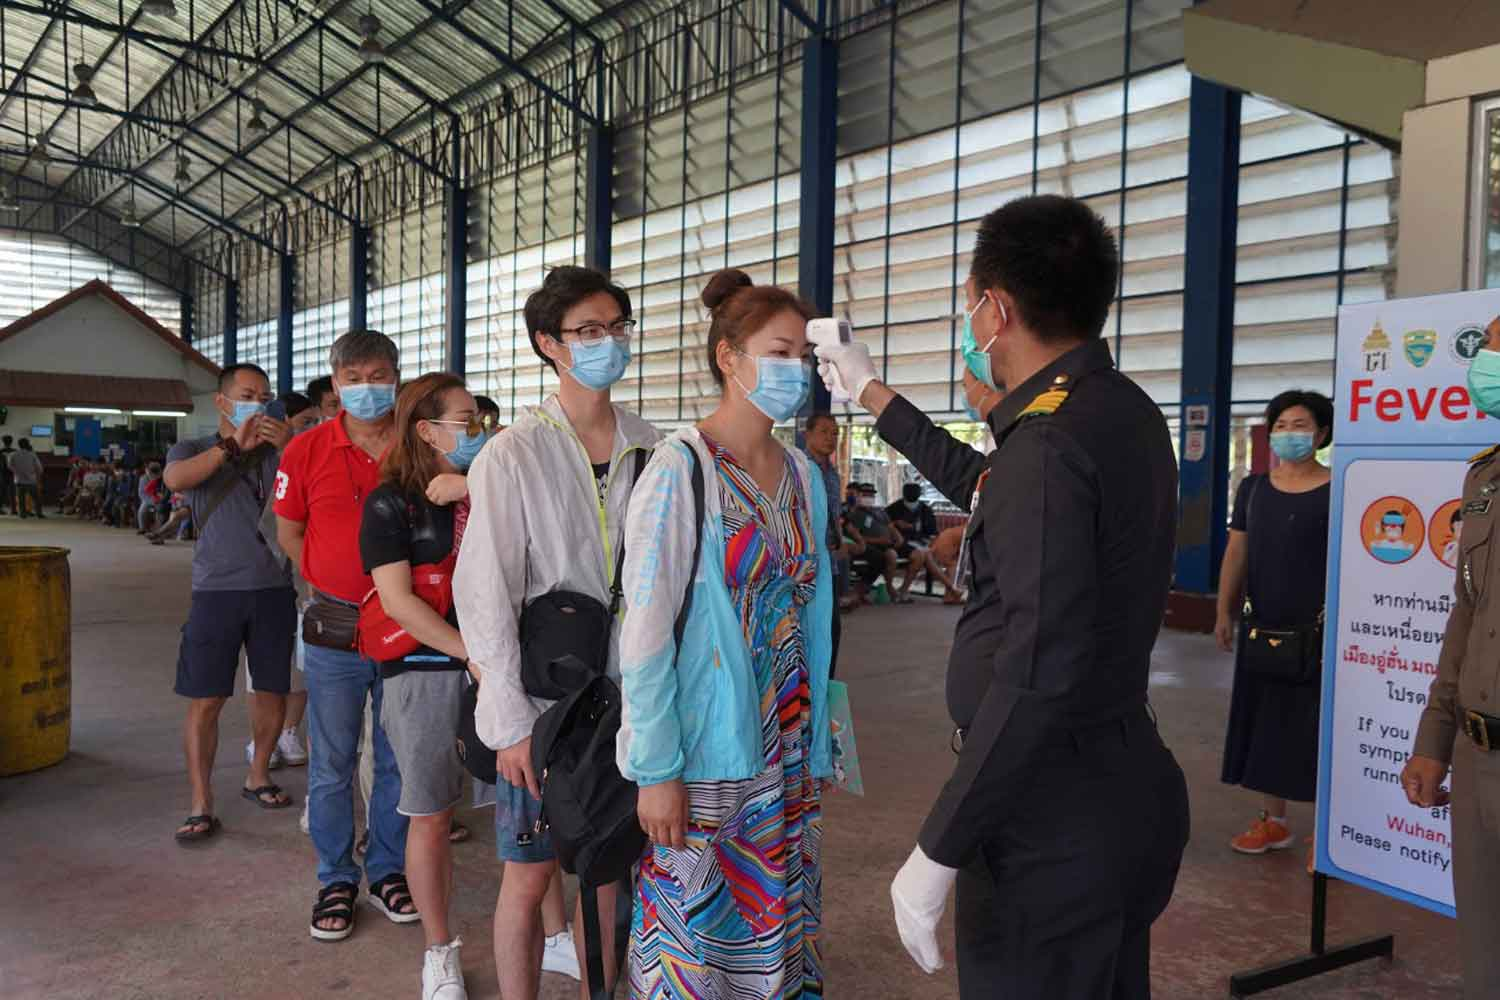 Chinese nationals arriving in Thailand through the Aranyaprathet border checkpoint in Sa Kaeo are being screened for signs of a fever. (Photo by Sawat Ketngam)